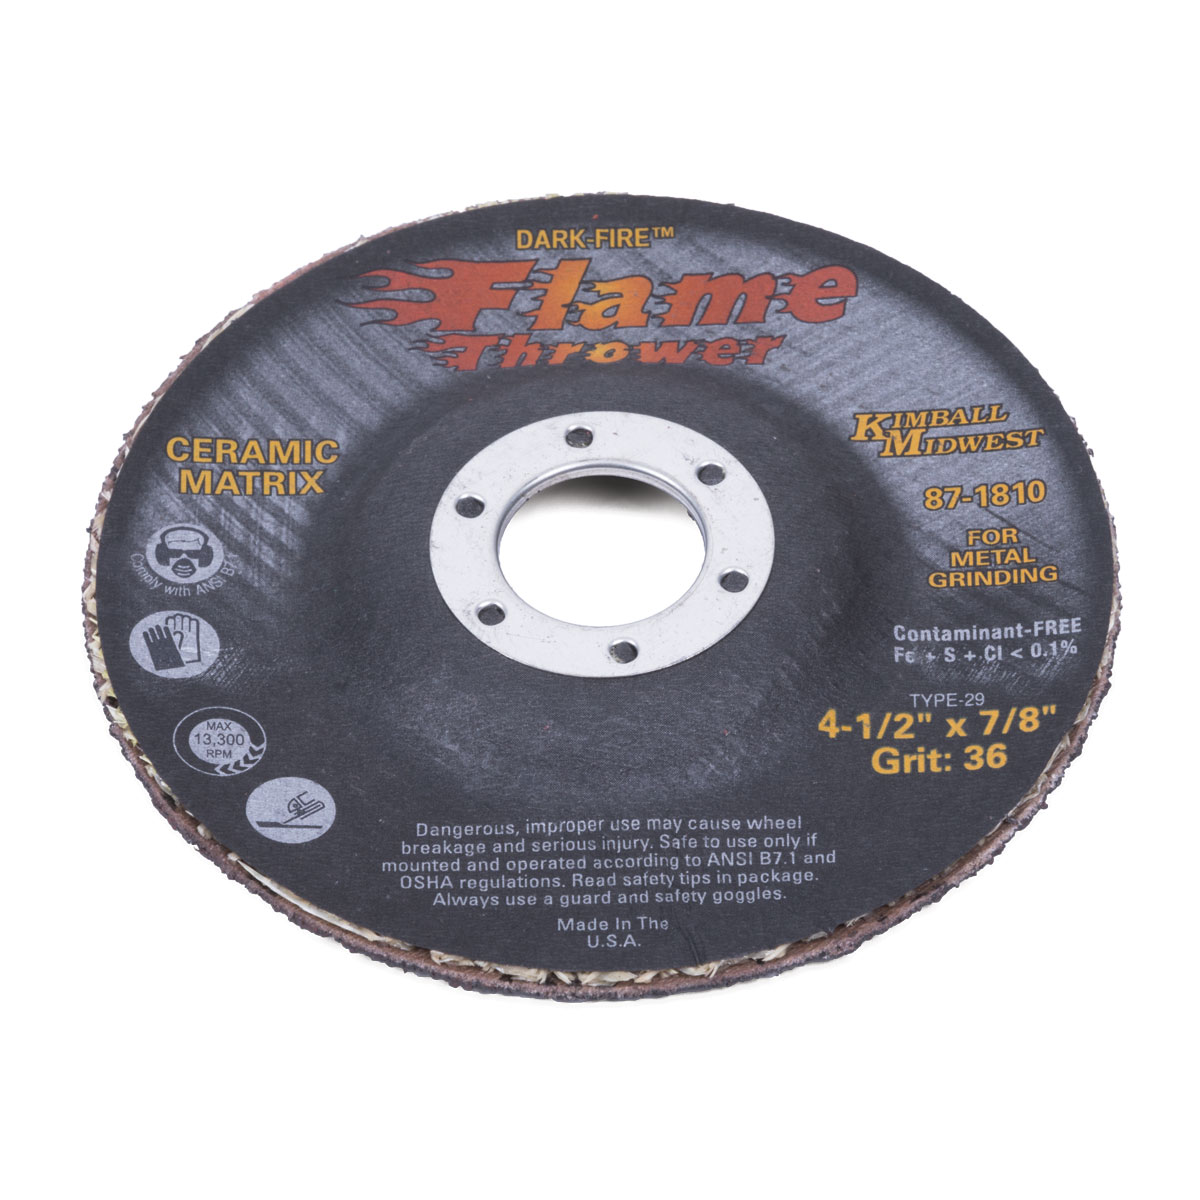 4-1/2 x 1/8 x 7/8 Dark-Fire™ Flamethrower Grinding Wheel - Kimball ...